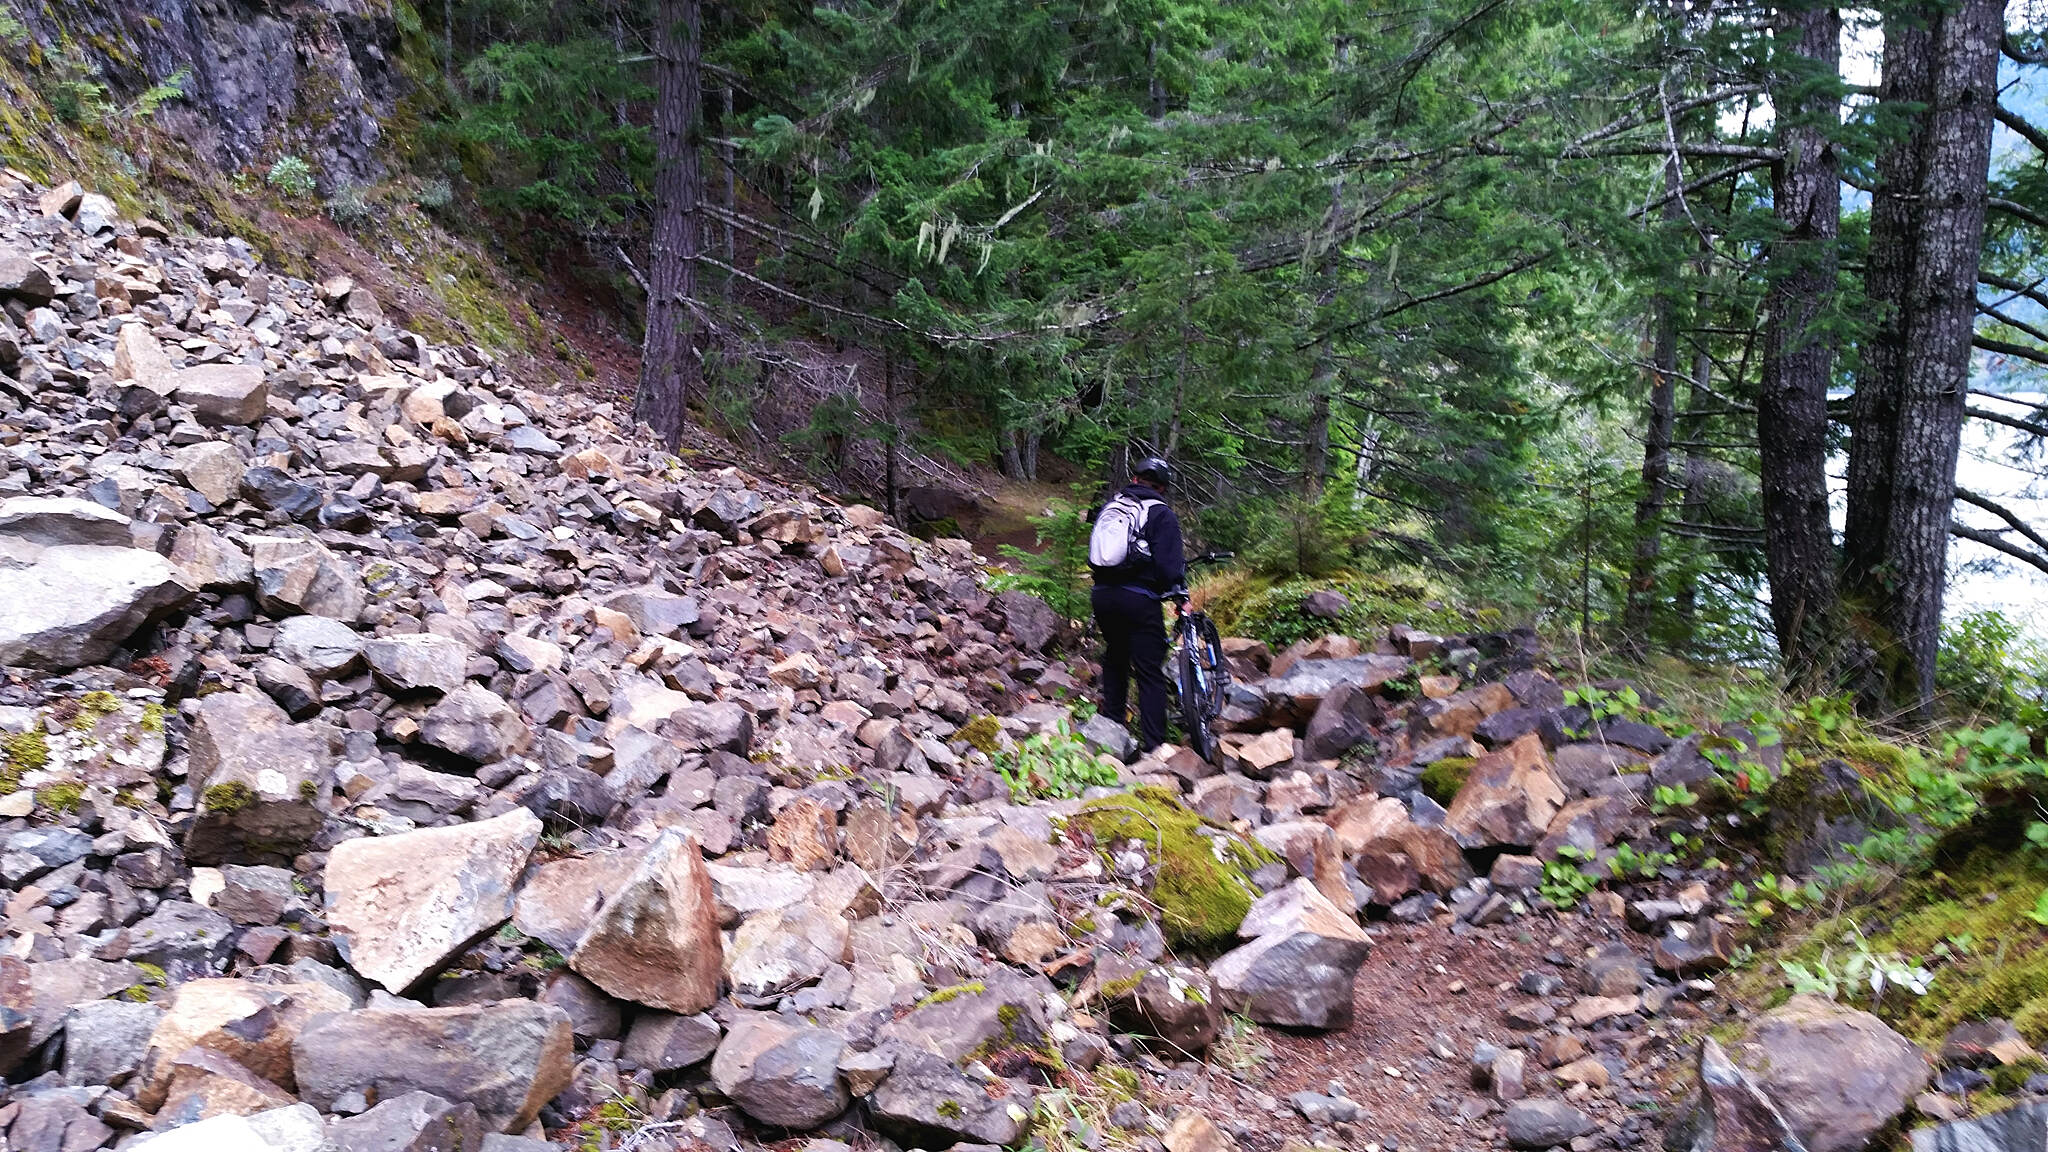 Olympic Discovery Trail - Spruce Railroad Trail Trail? The worst of it, and it was only a short carry